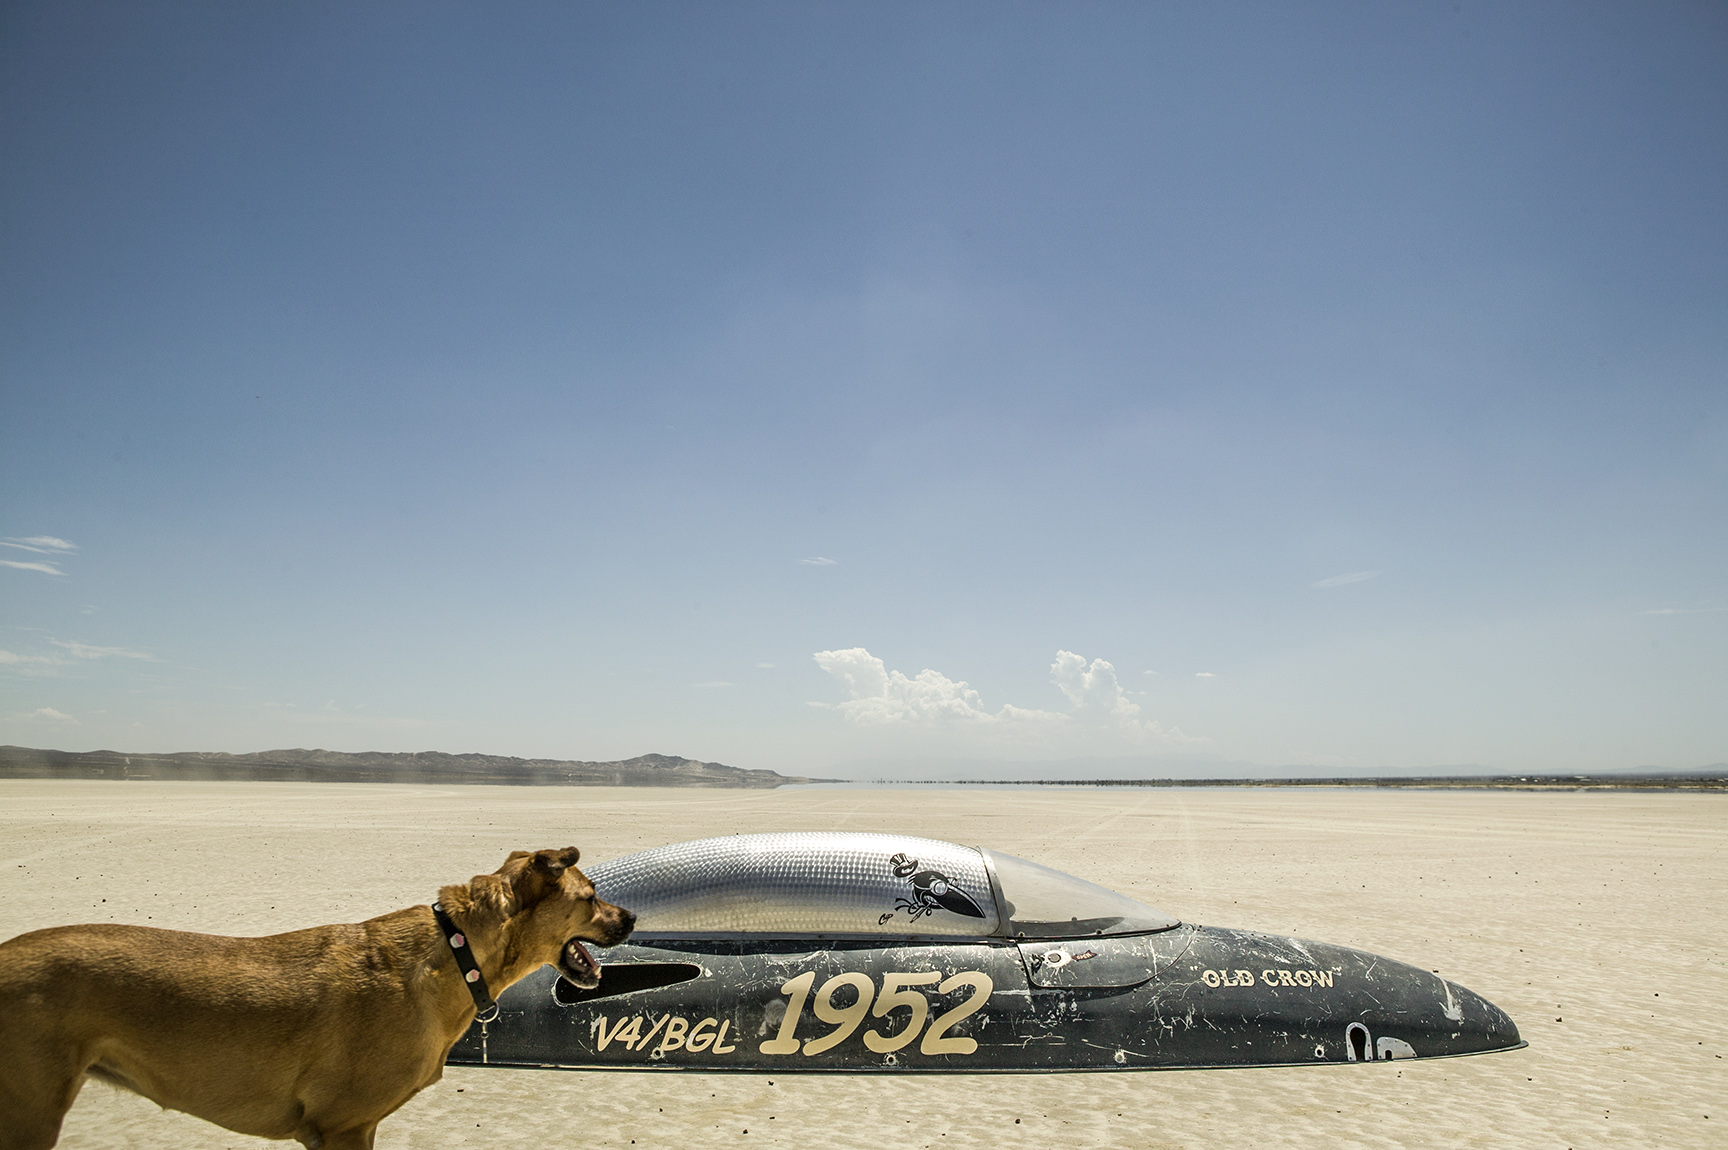 The canopy of a belly tank race carout in the Mojave desert.